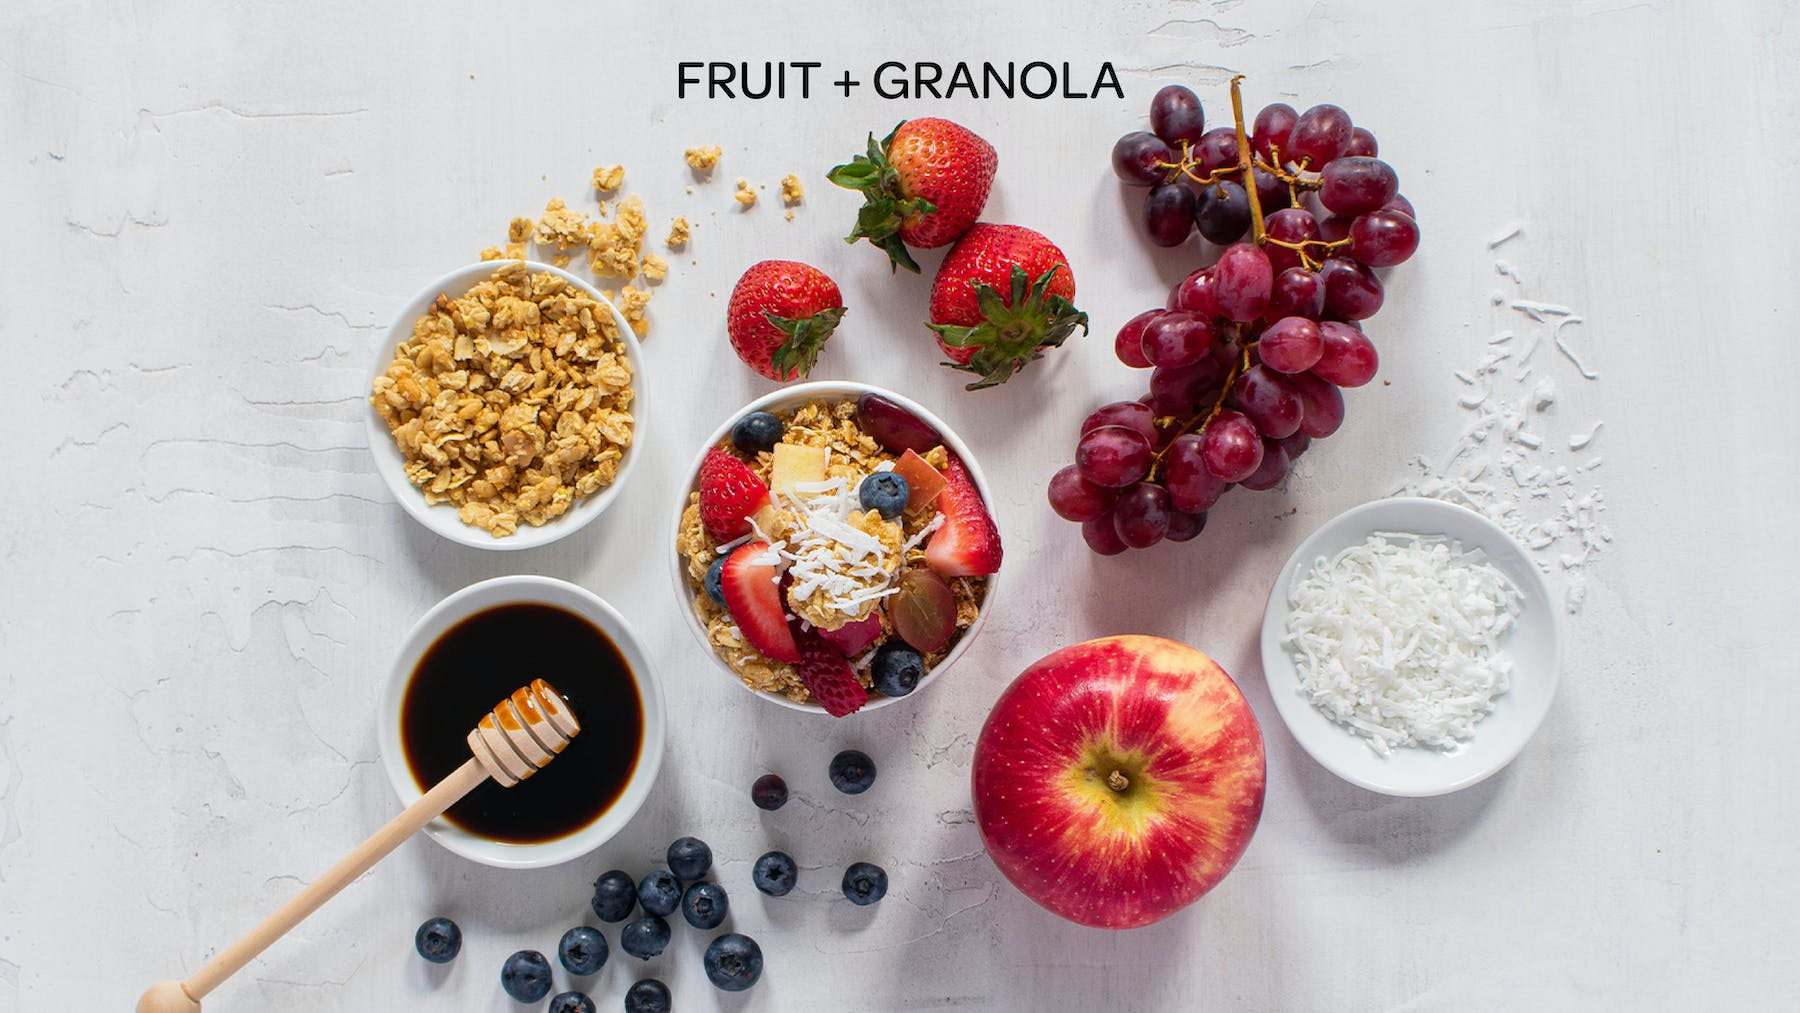 the ingredients of a fruit and granola honeybar laid out on a table